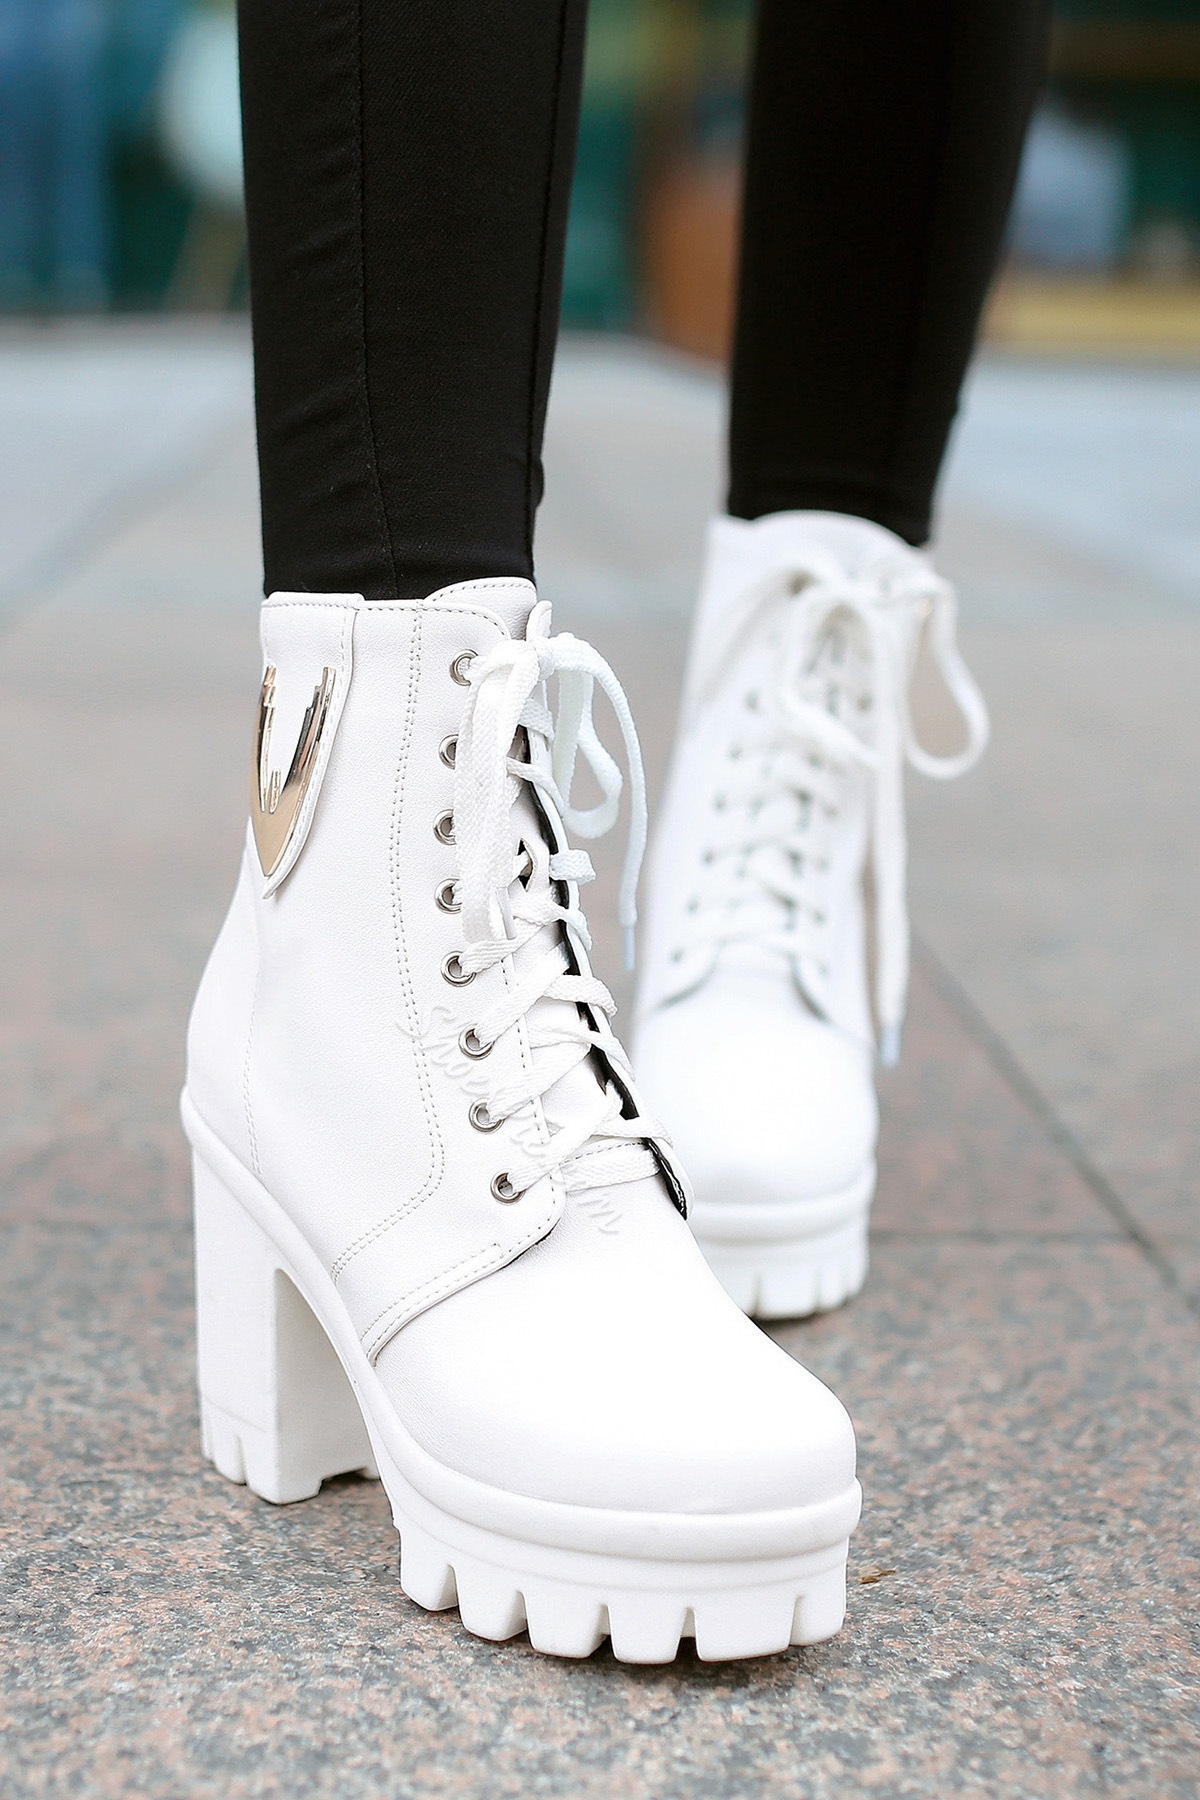 Fancy Round Toe Lace-Up Chunky Heel Boots- Shoespie.com